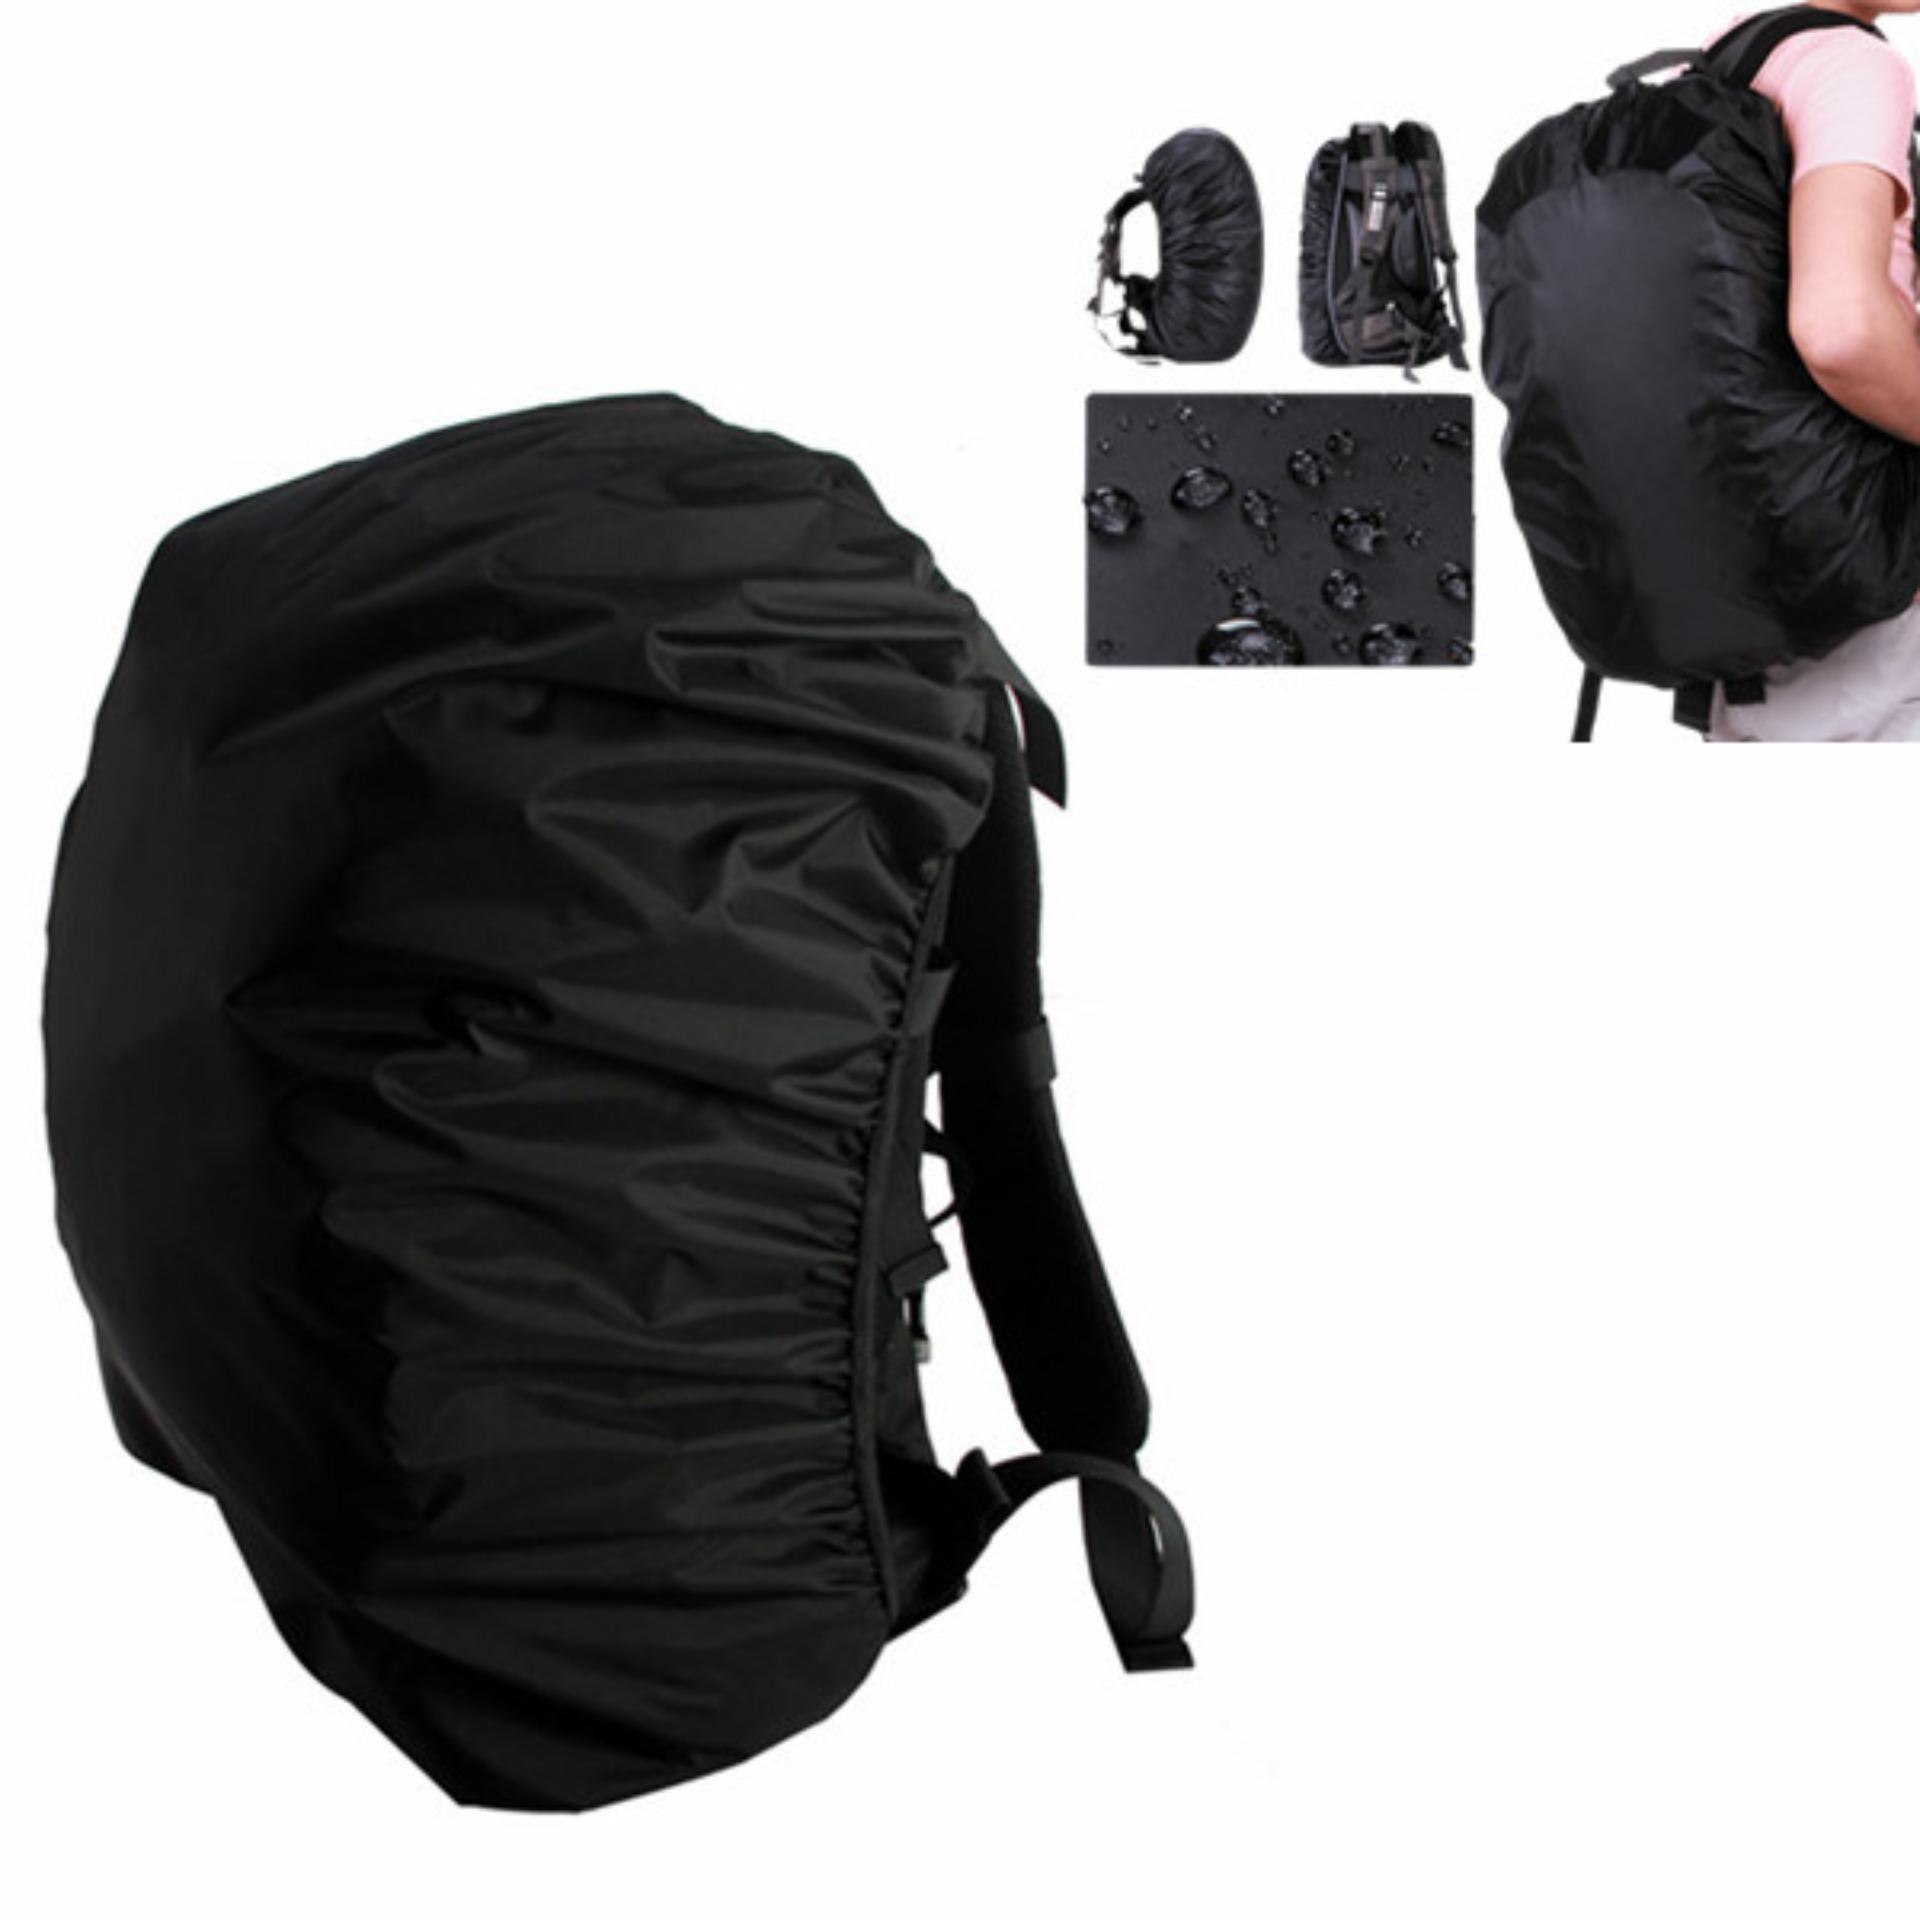 f882c4b068d6 Outdoor Waterproof Backpack Rucksack Rain Cover Bag Rainproof Pack Cover  for Camping Hiking (Black)